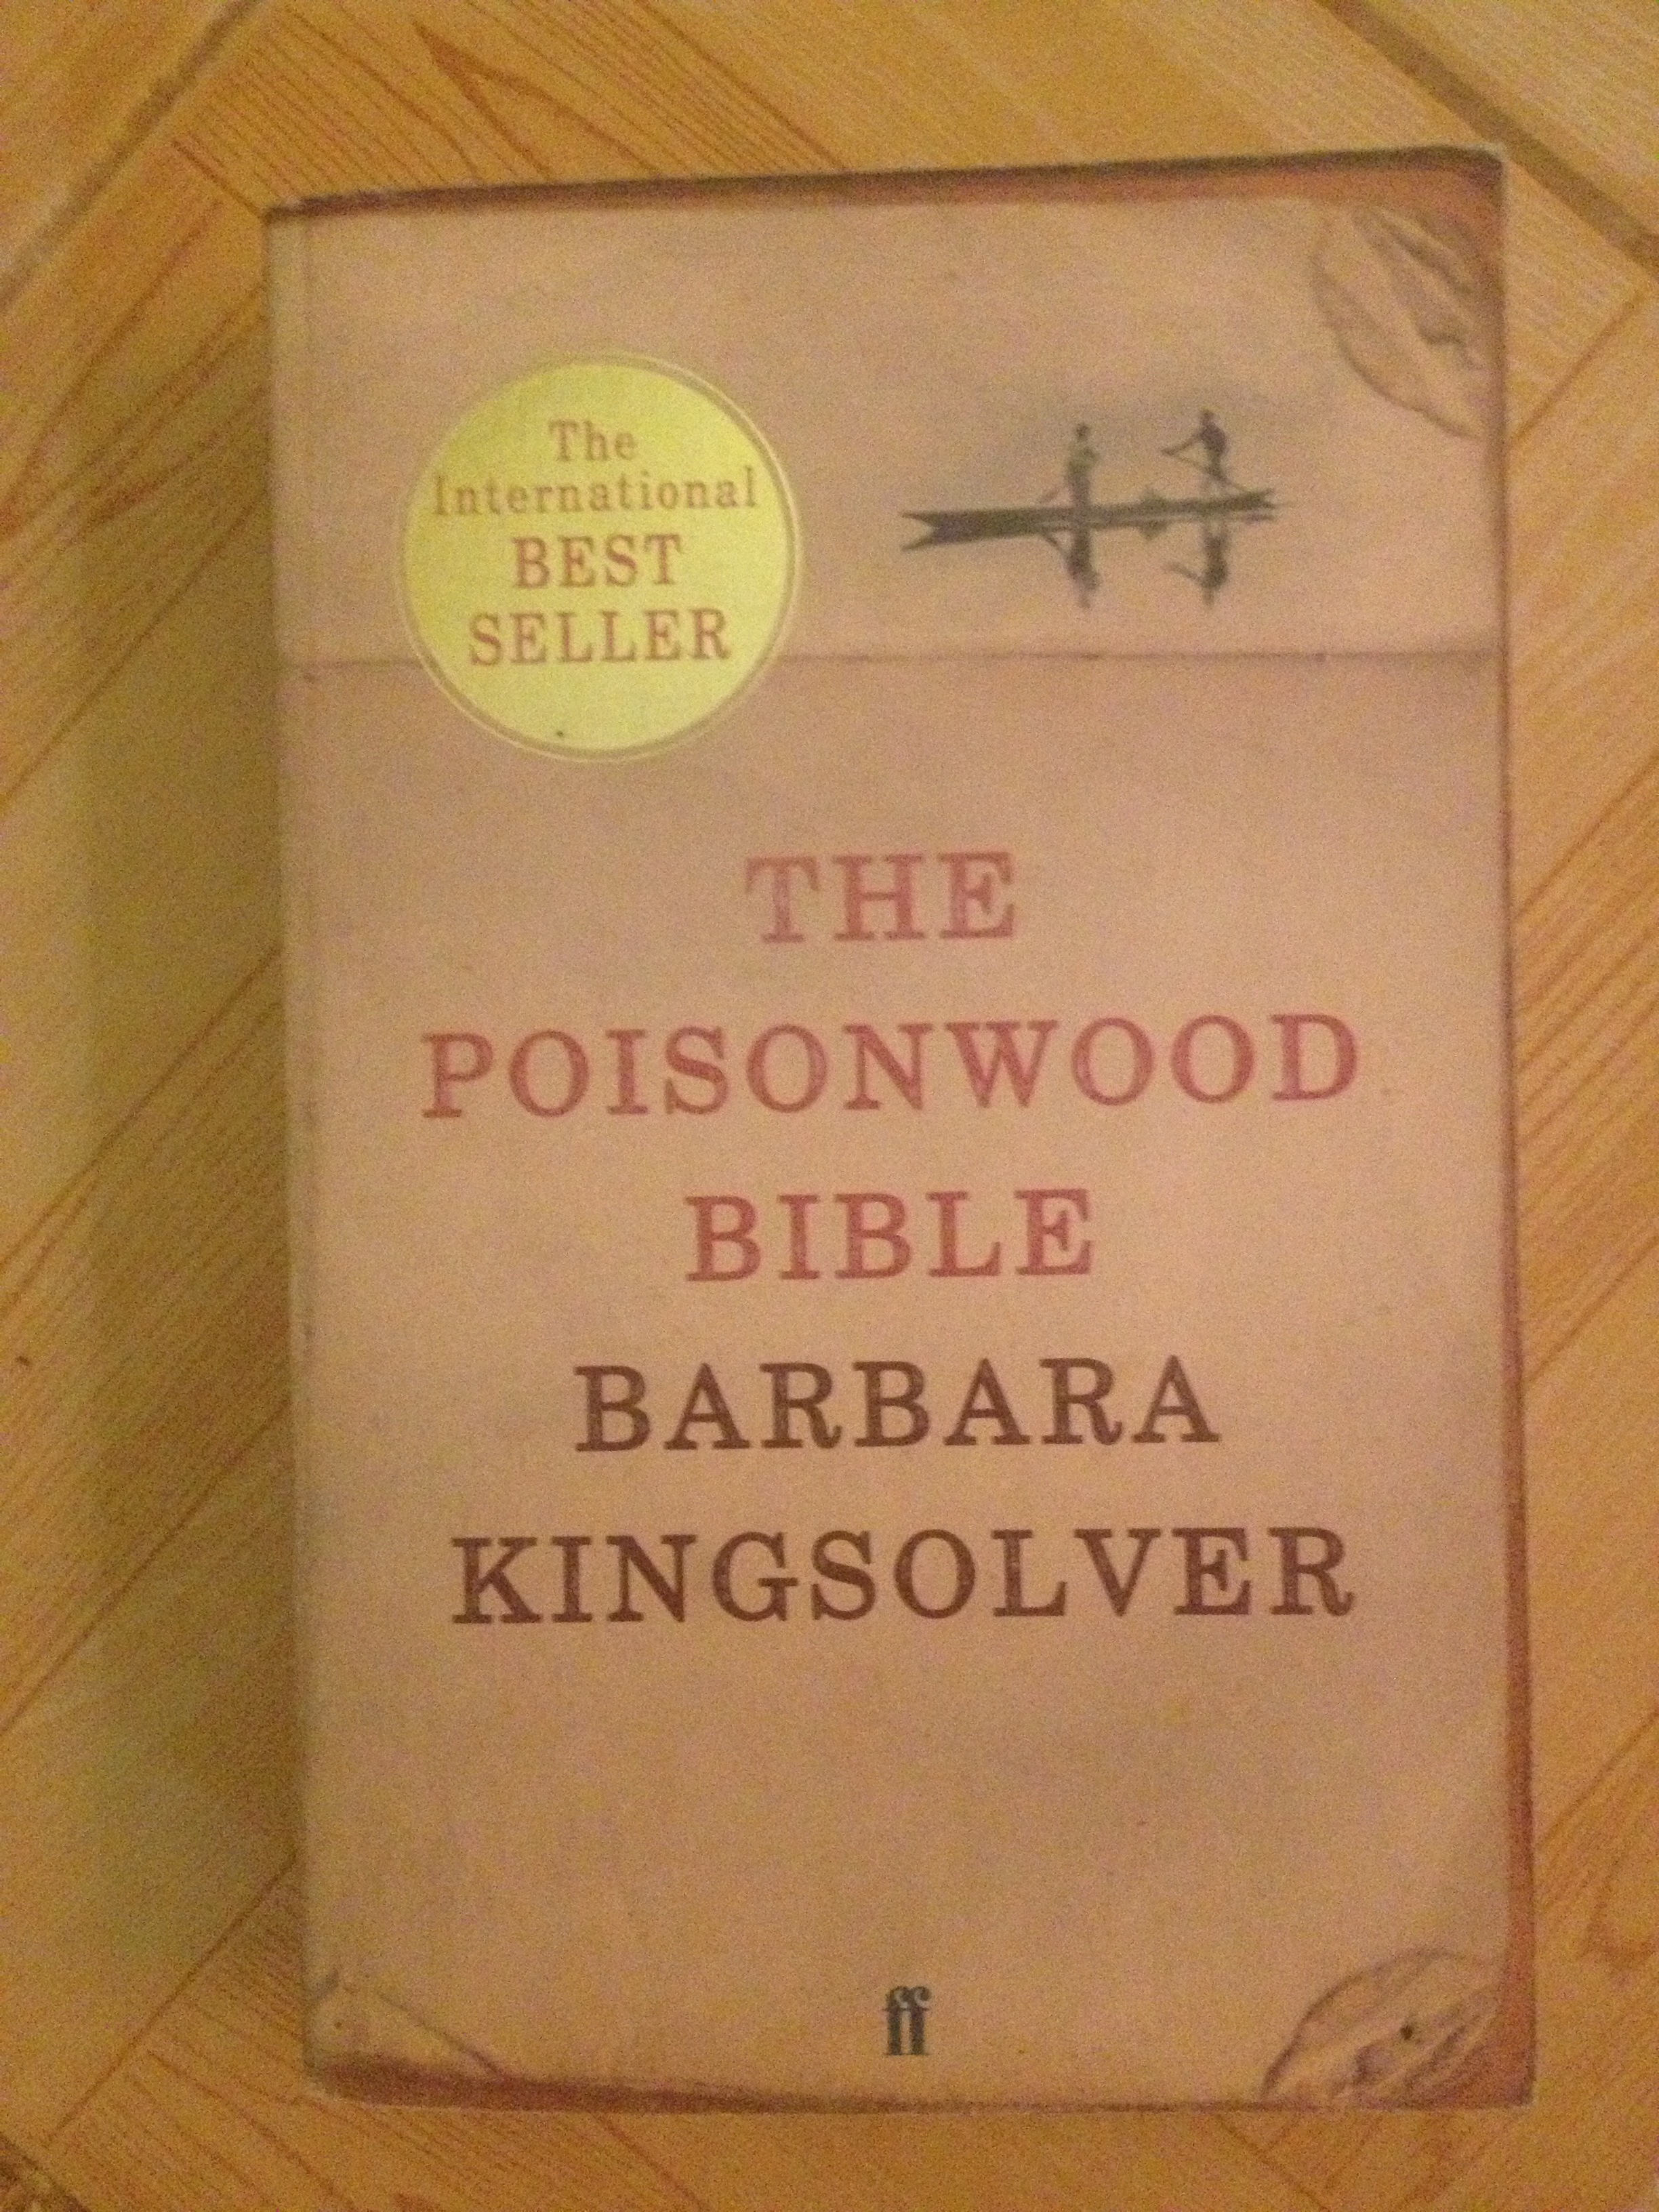 barbara kingsolver and the poisonwood bible critical essay barbara kingsolver and the poisonwood bible critical essay one day